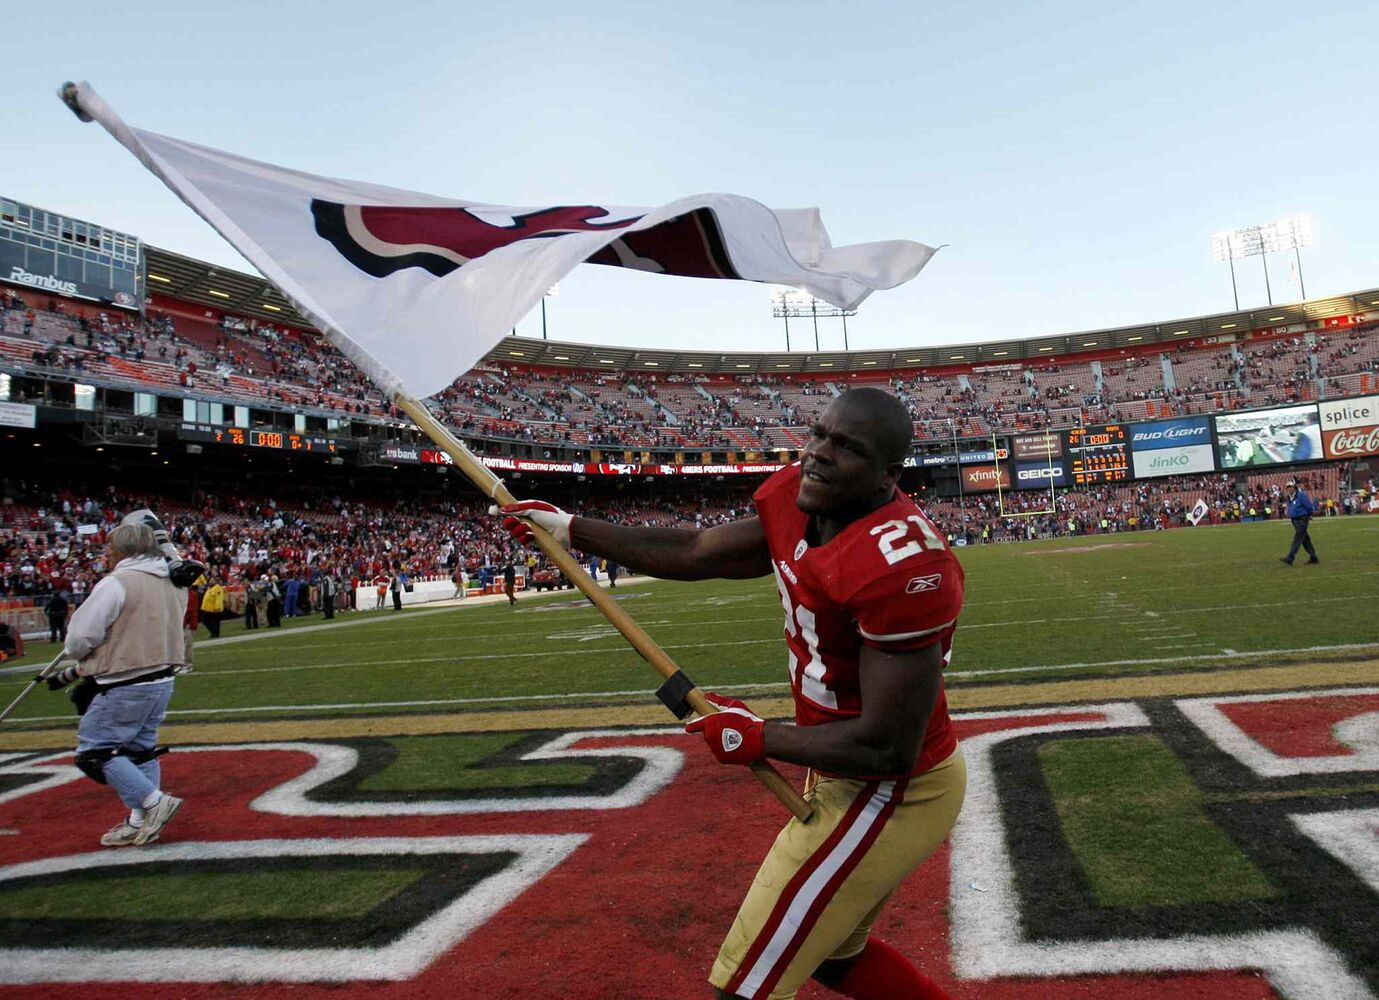 Frank Gore of the San Francisco 49ers waves a 49ers flag after they beat the St. Louis Rams 26-0 at Candlestick Park in December 2011. (Nhat V. Meyer / San Jose Mercury News / MCT files)